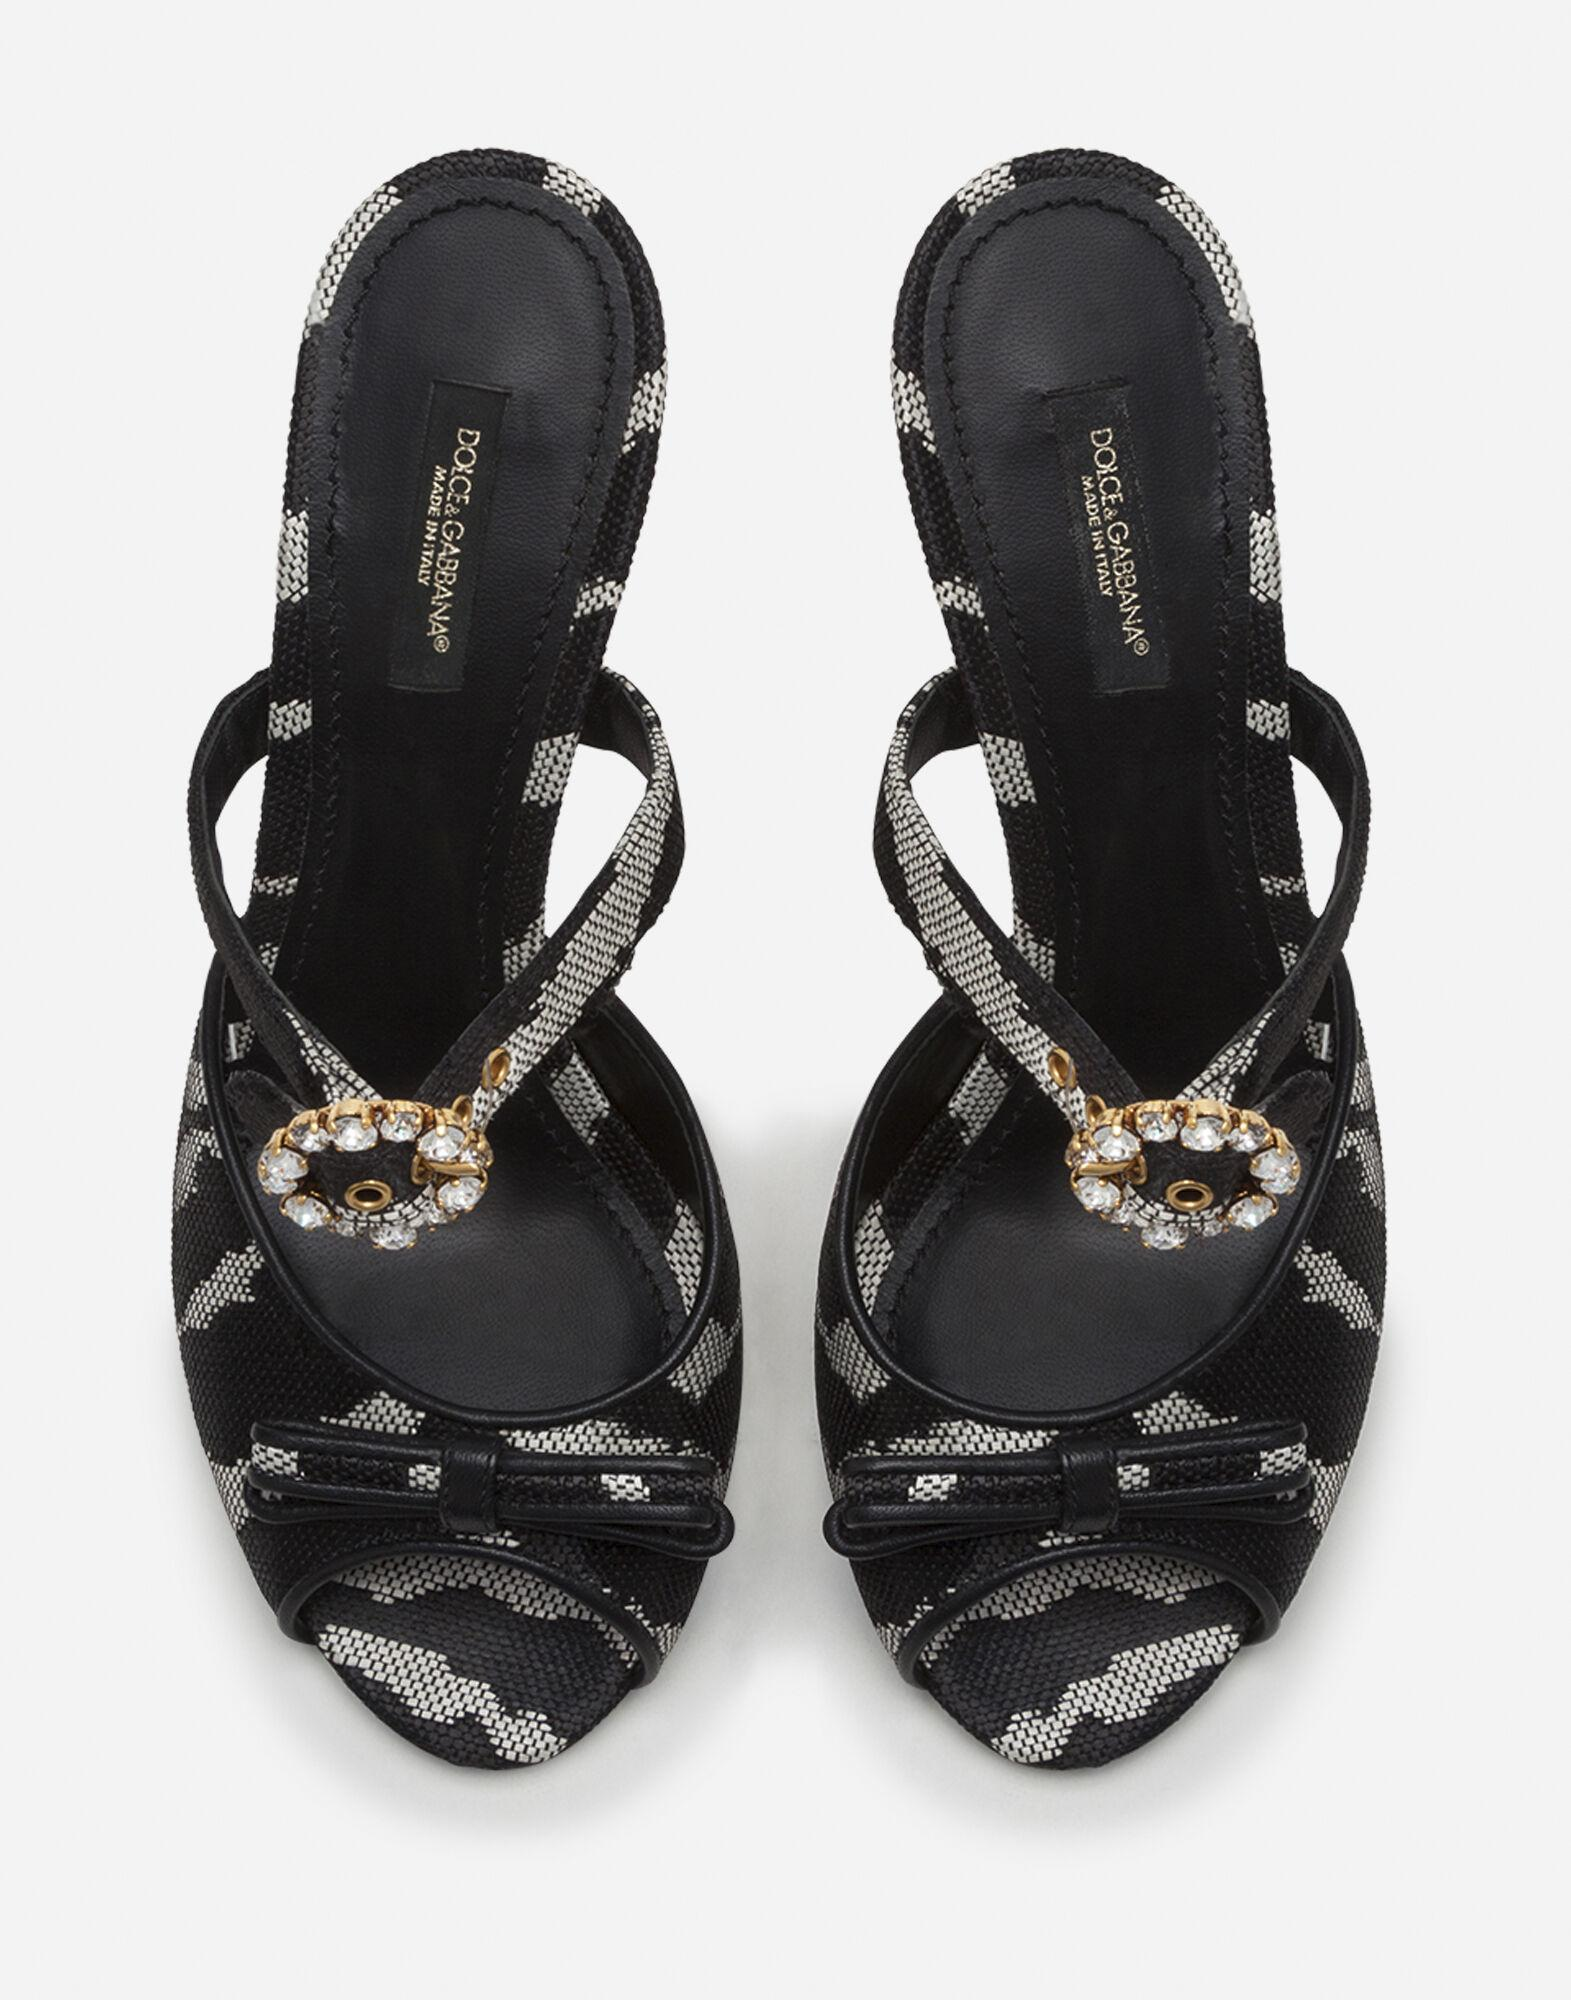 Mules in raffia jacquard with zebra print with bejeweled buckle 3